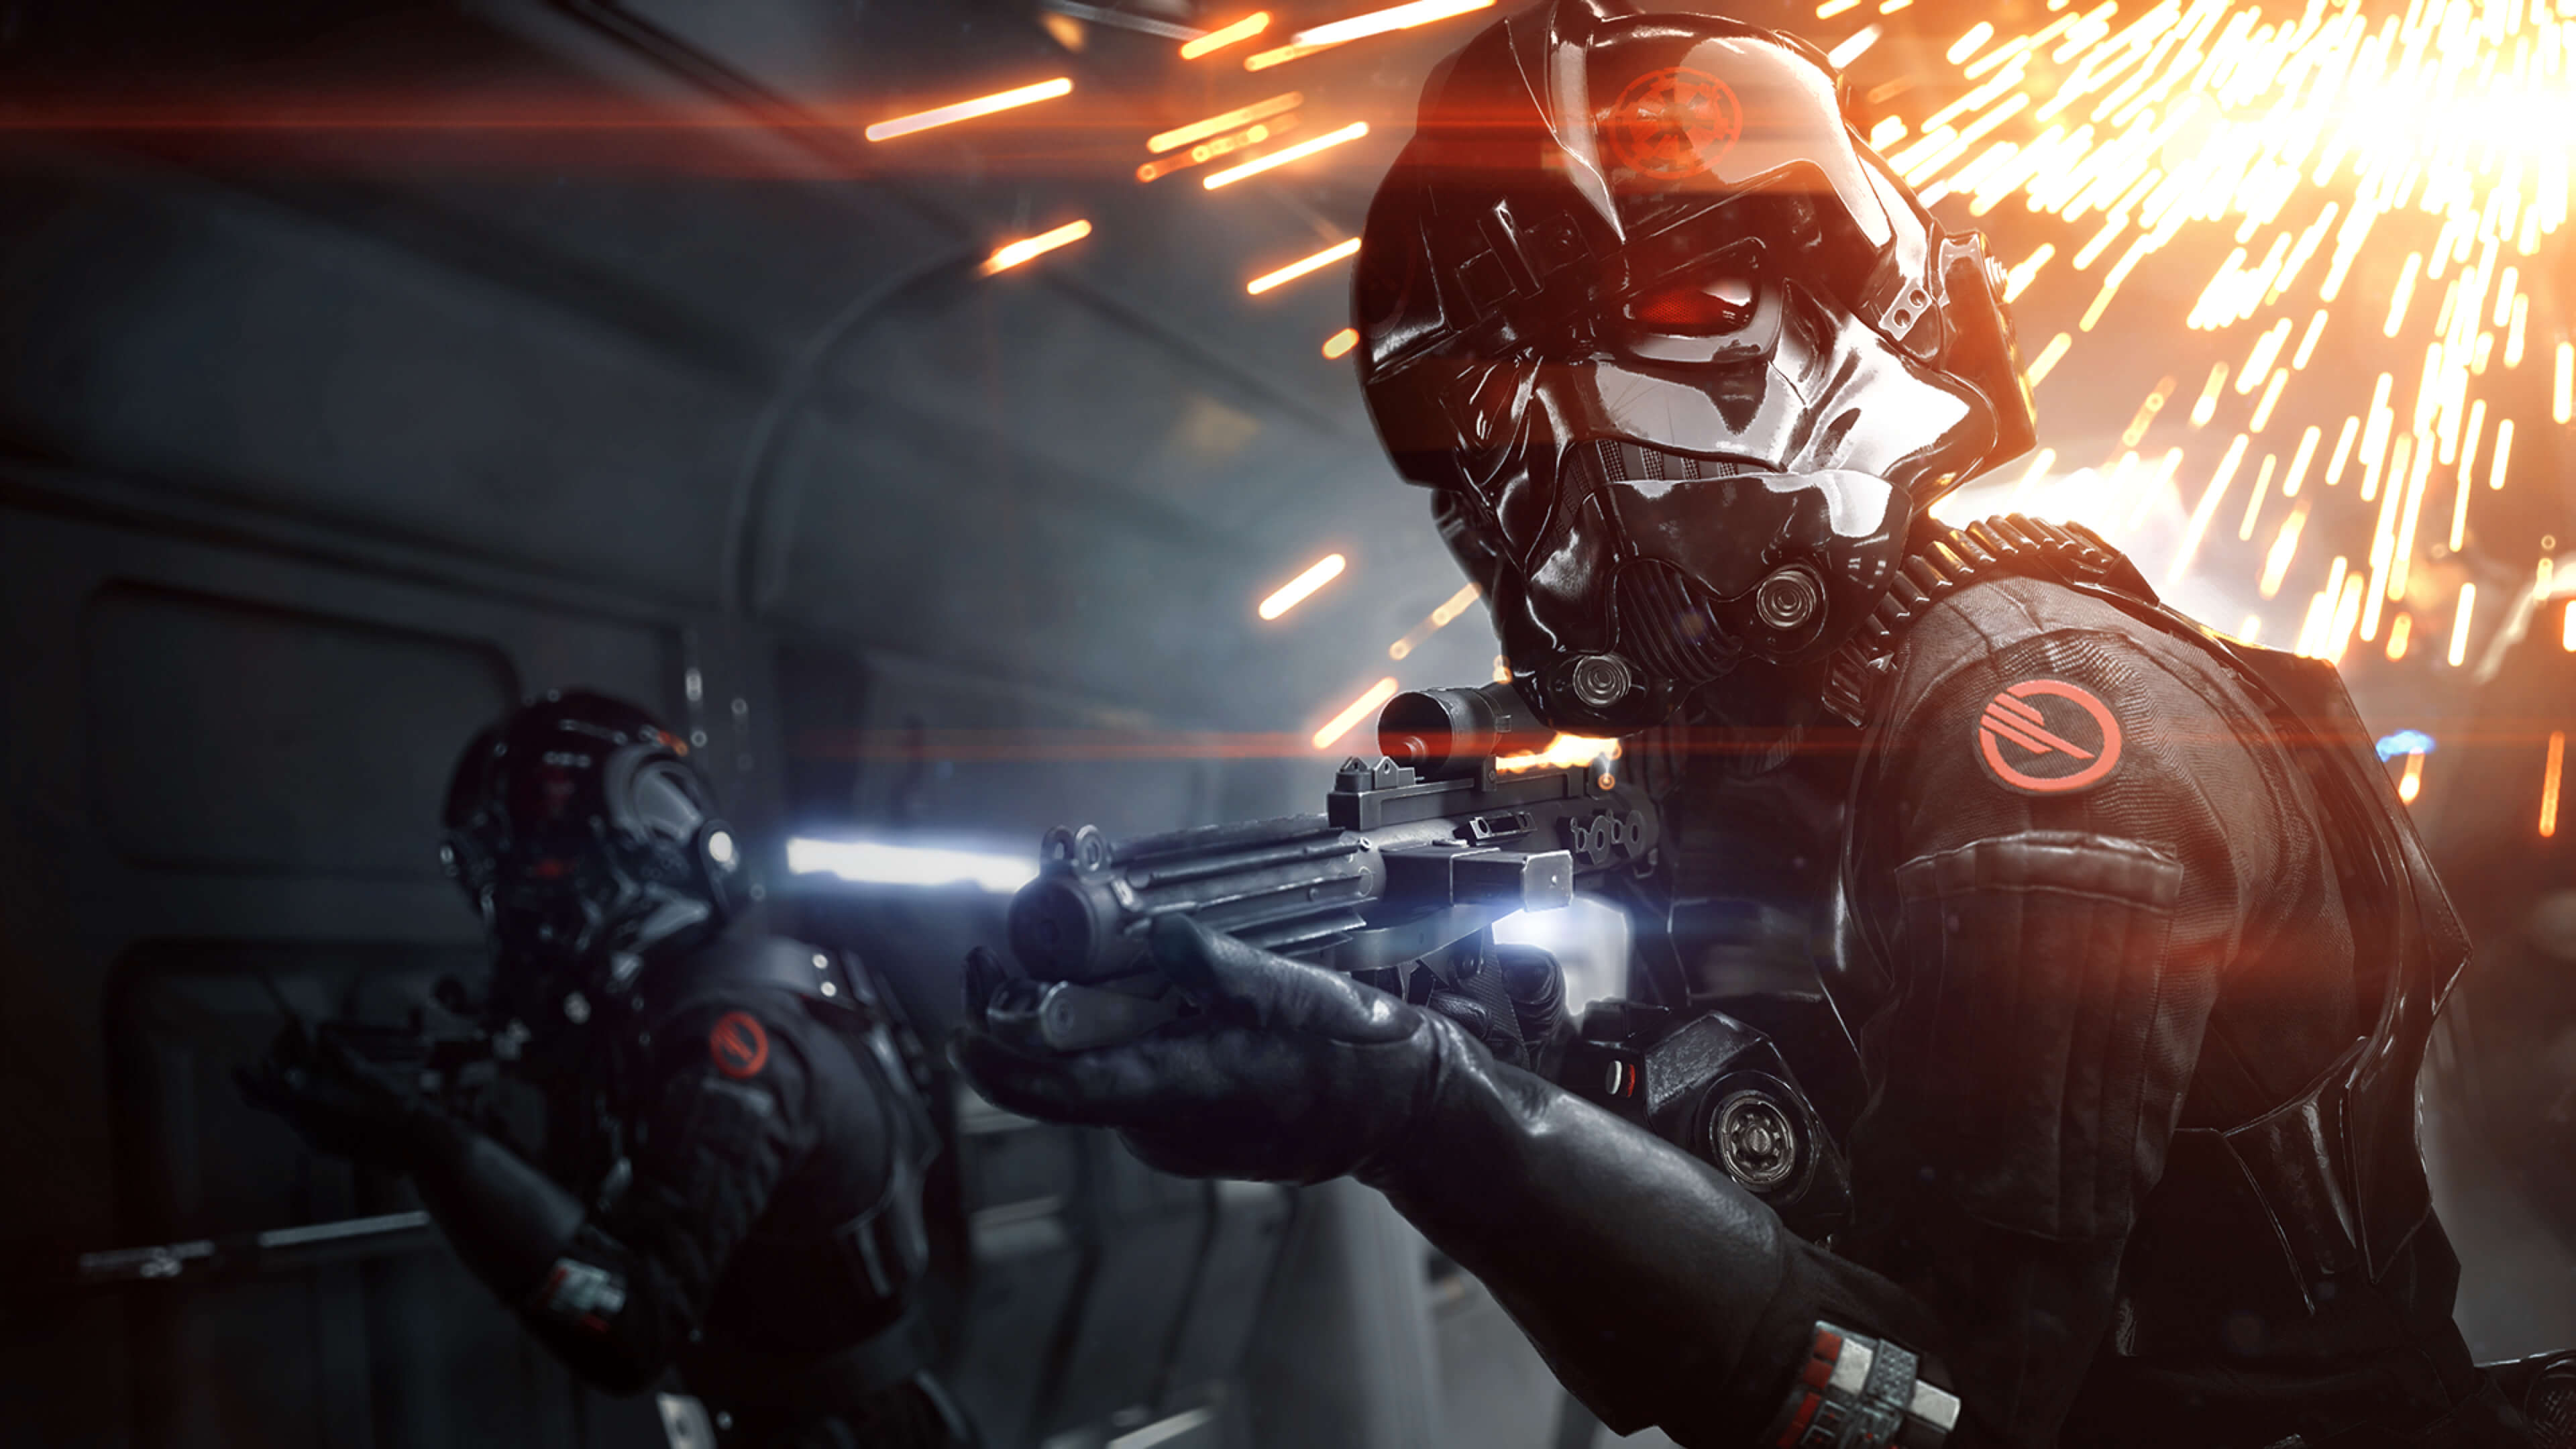 Star Wars Battlefront 2 Wallpaper 203 3840x2160 Pixel Wallpaperpass